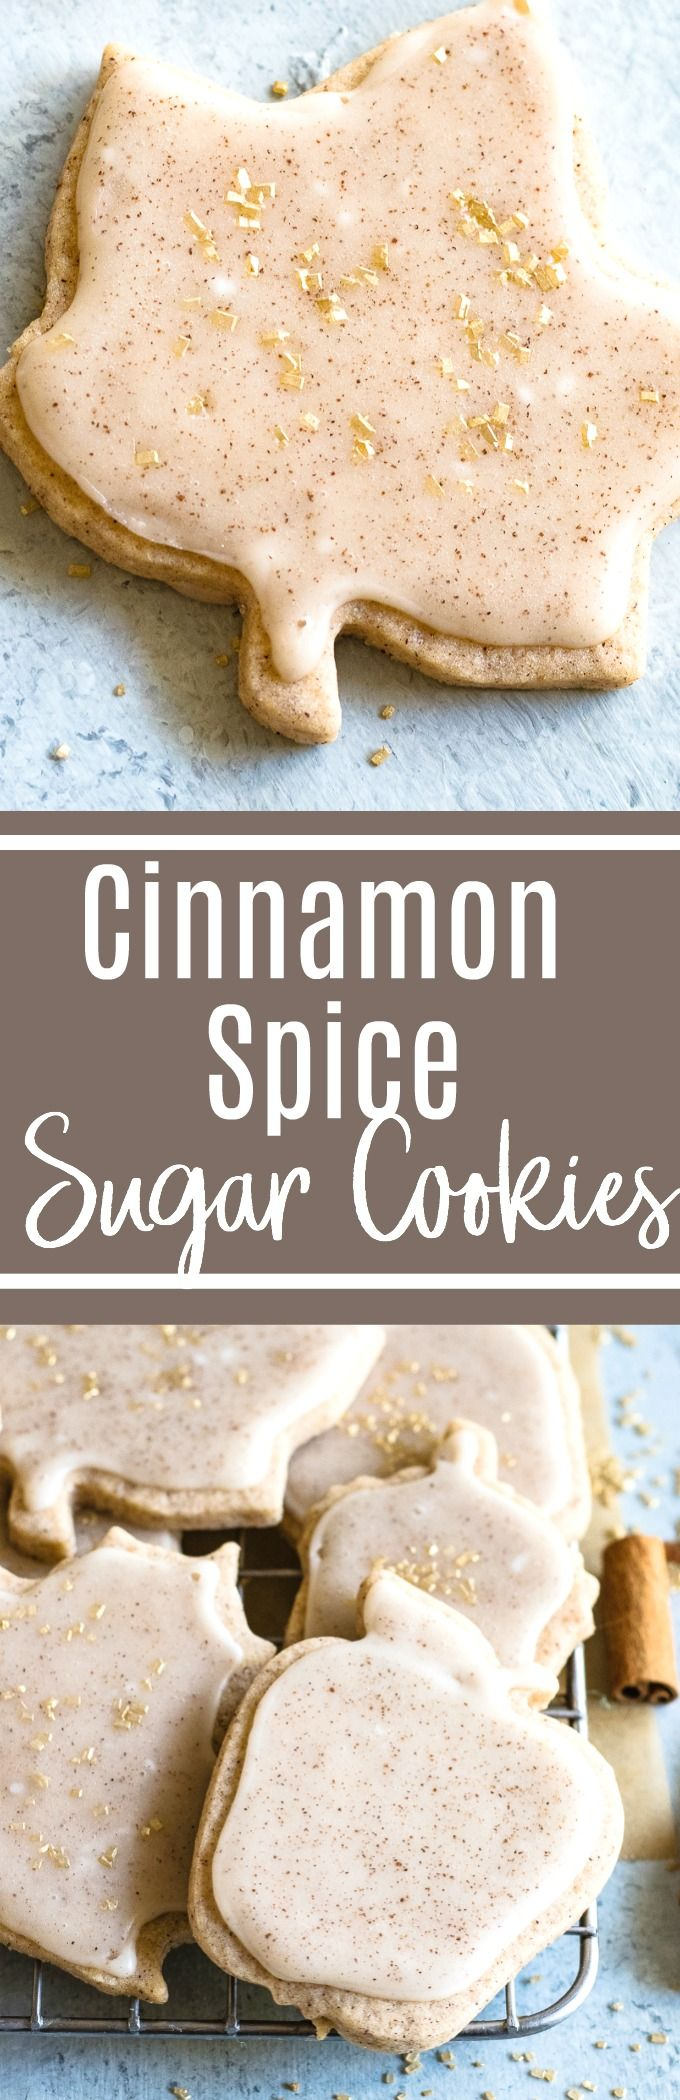 Cinnamon Sugar Cookies. These soft and buttery sugar cookies are loaded up cinnamon and spice plus they're topped with cinnamon icing for even more flavor! Perfect for Fall